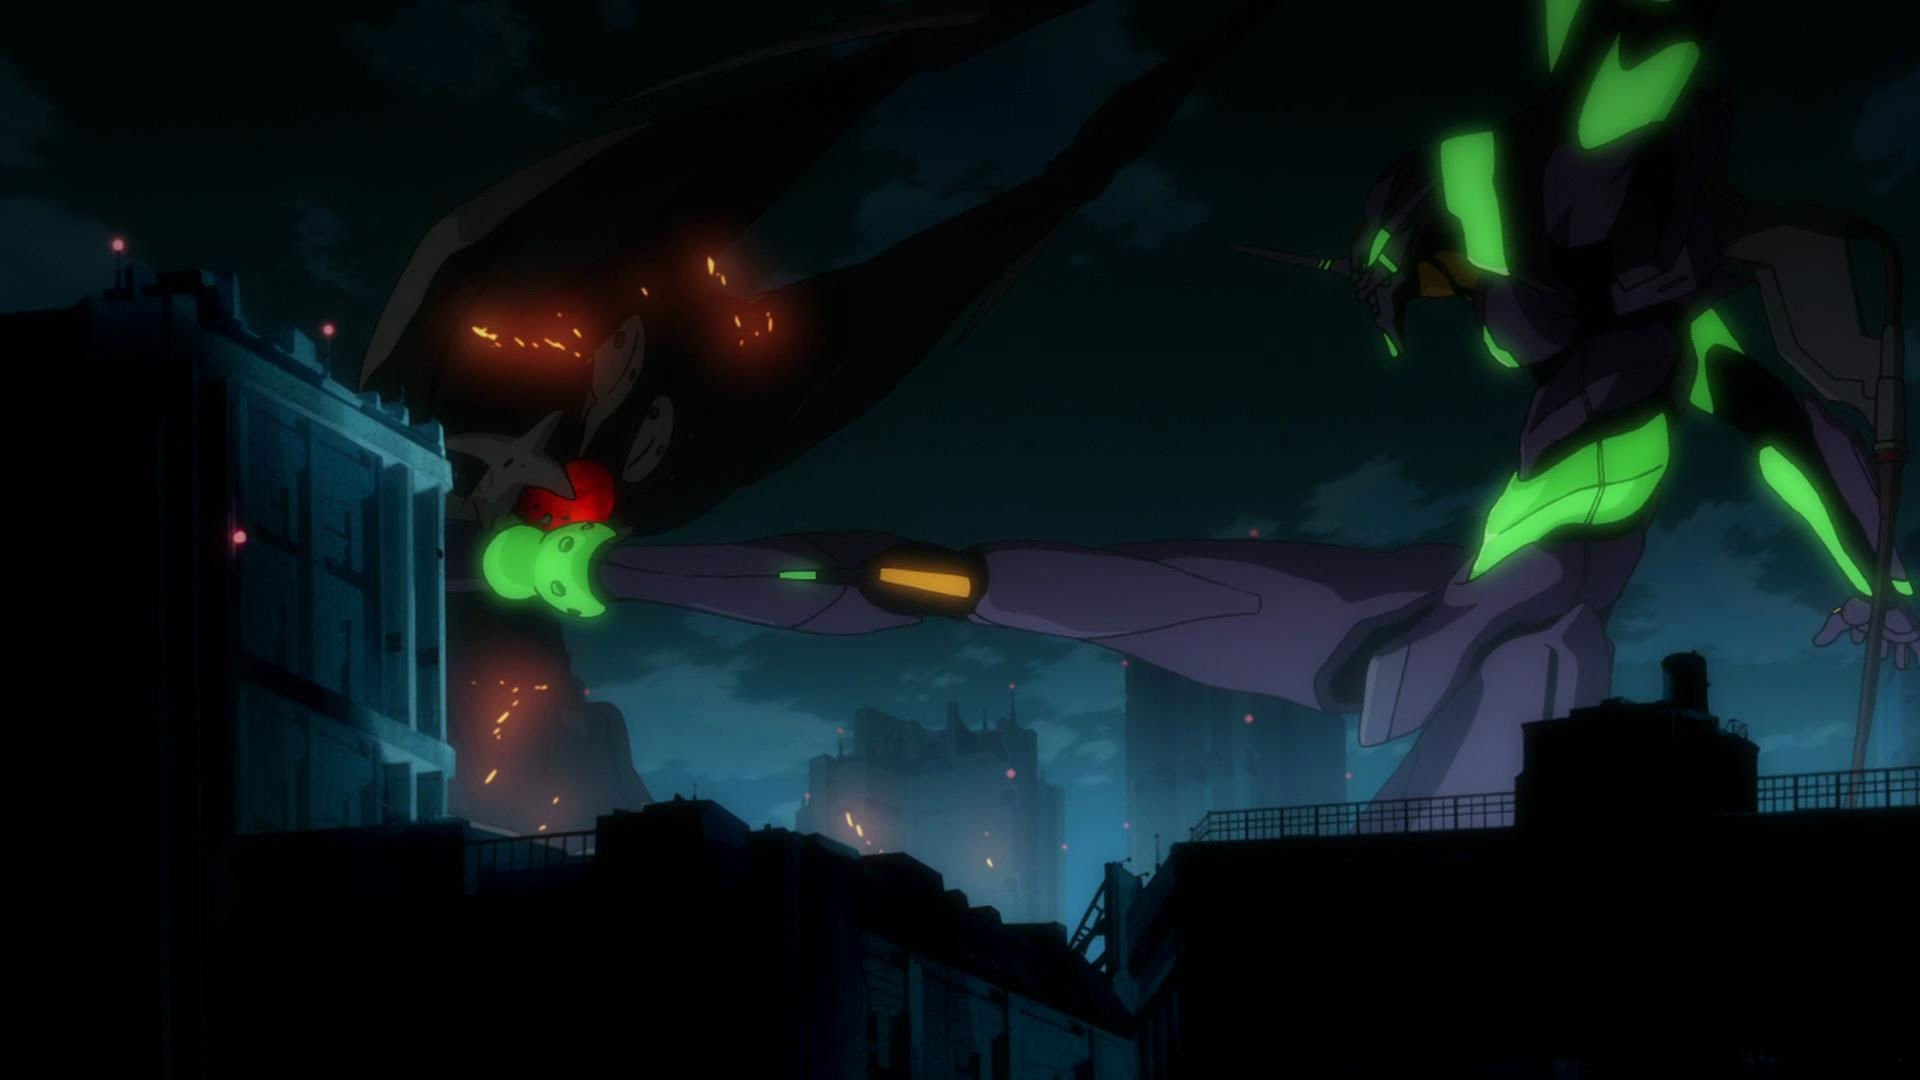 City Shrouded in Shadows cancels Vita Version, Evangelion Unit-01 and Gamera confirmed screenshot